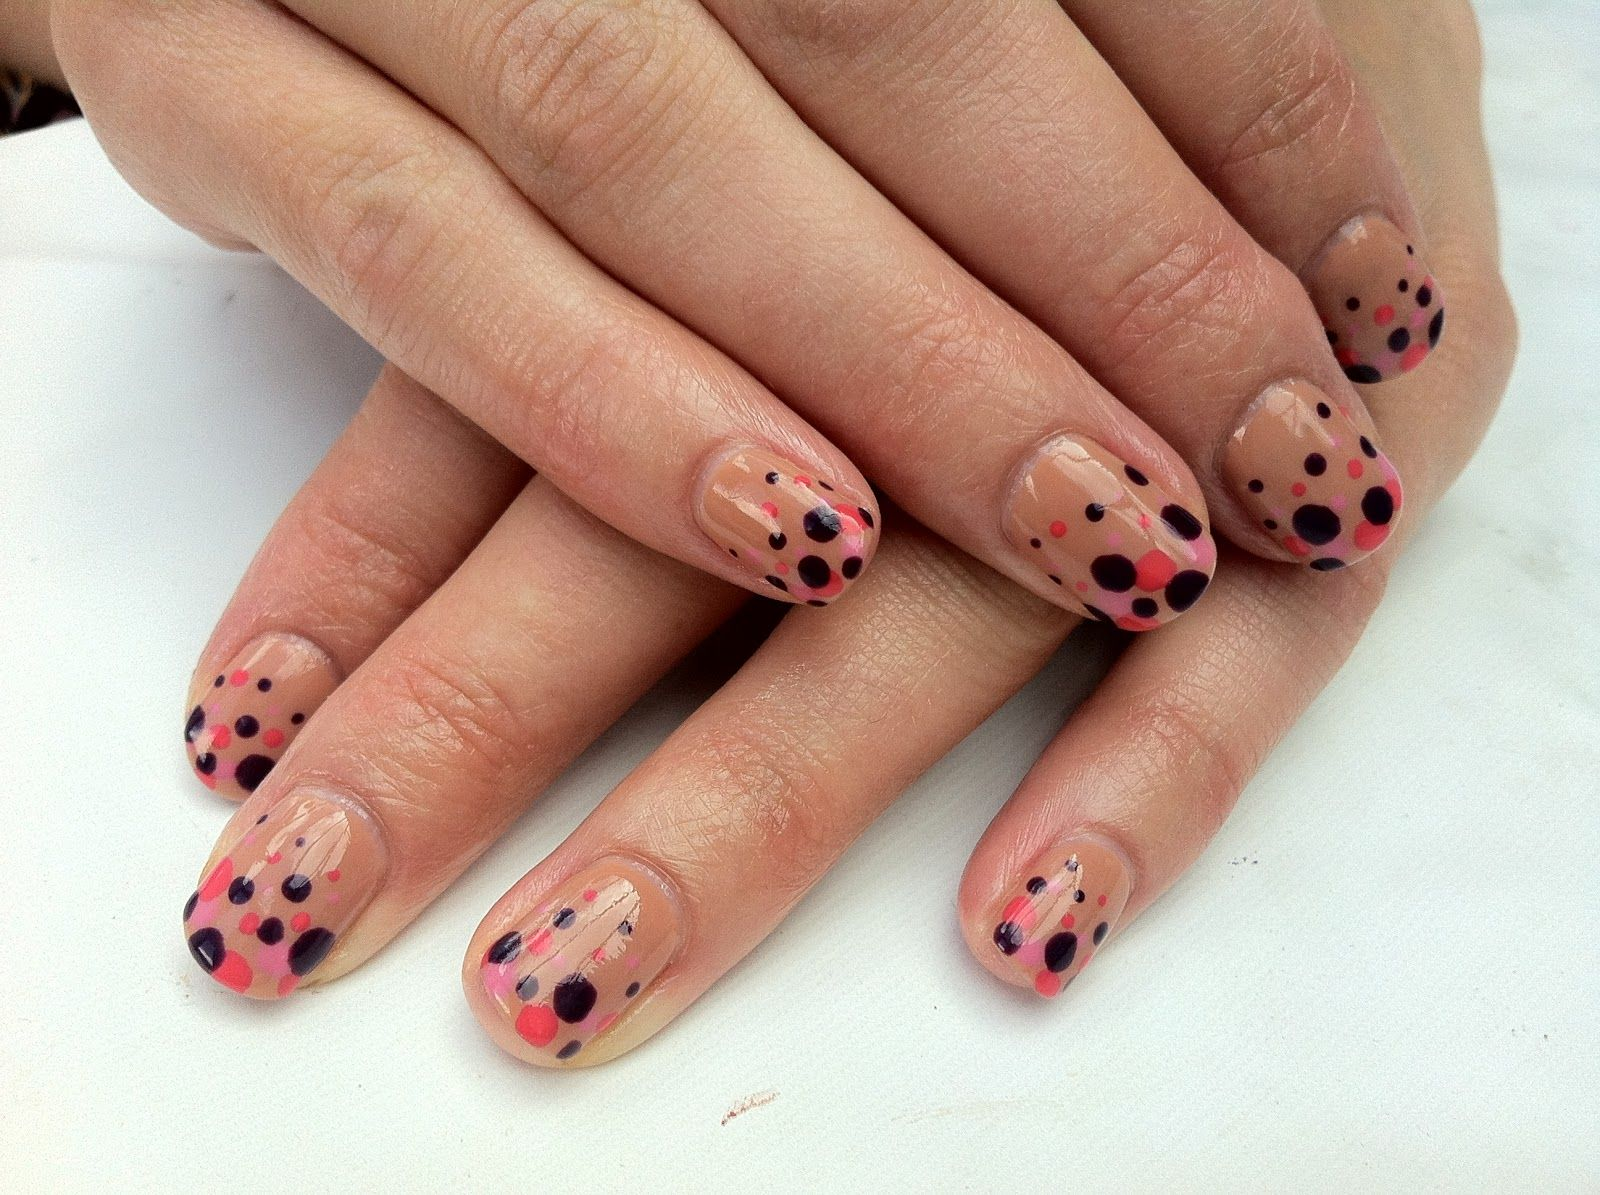 cnd shellac nail art cocoa with rock royalty tropix and gotcha gradient dots